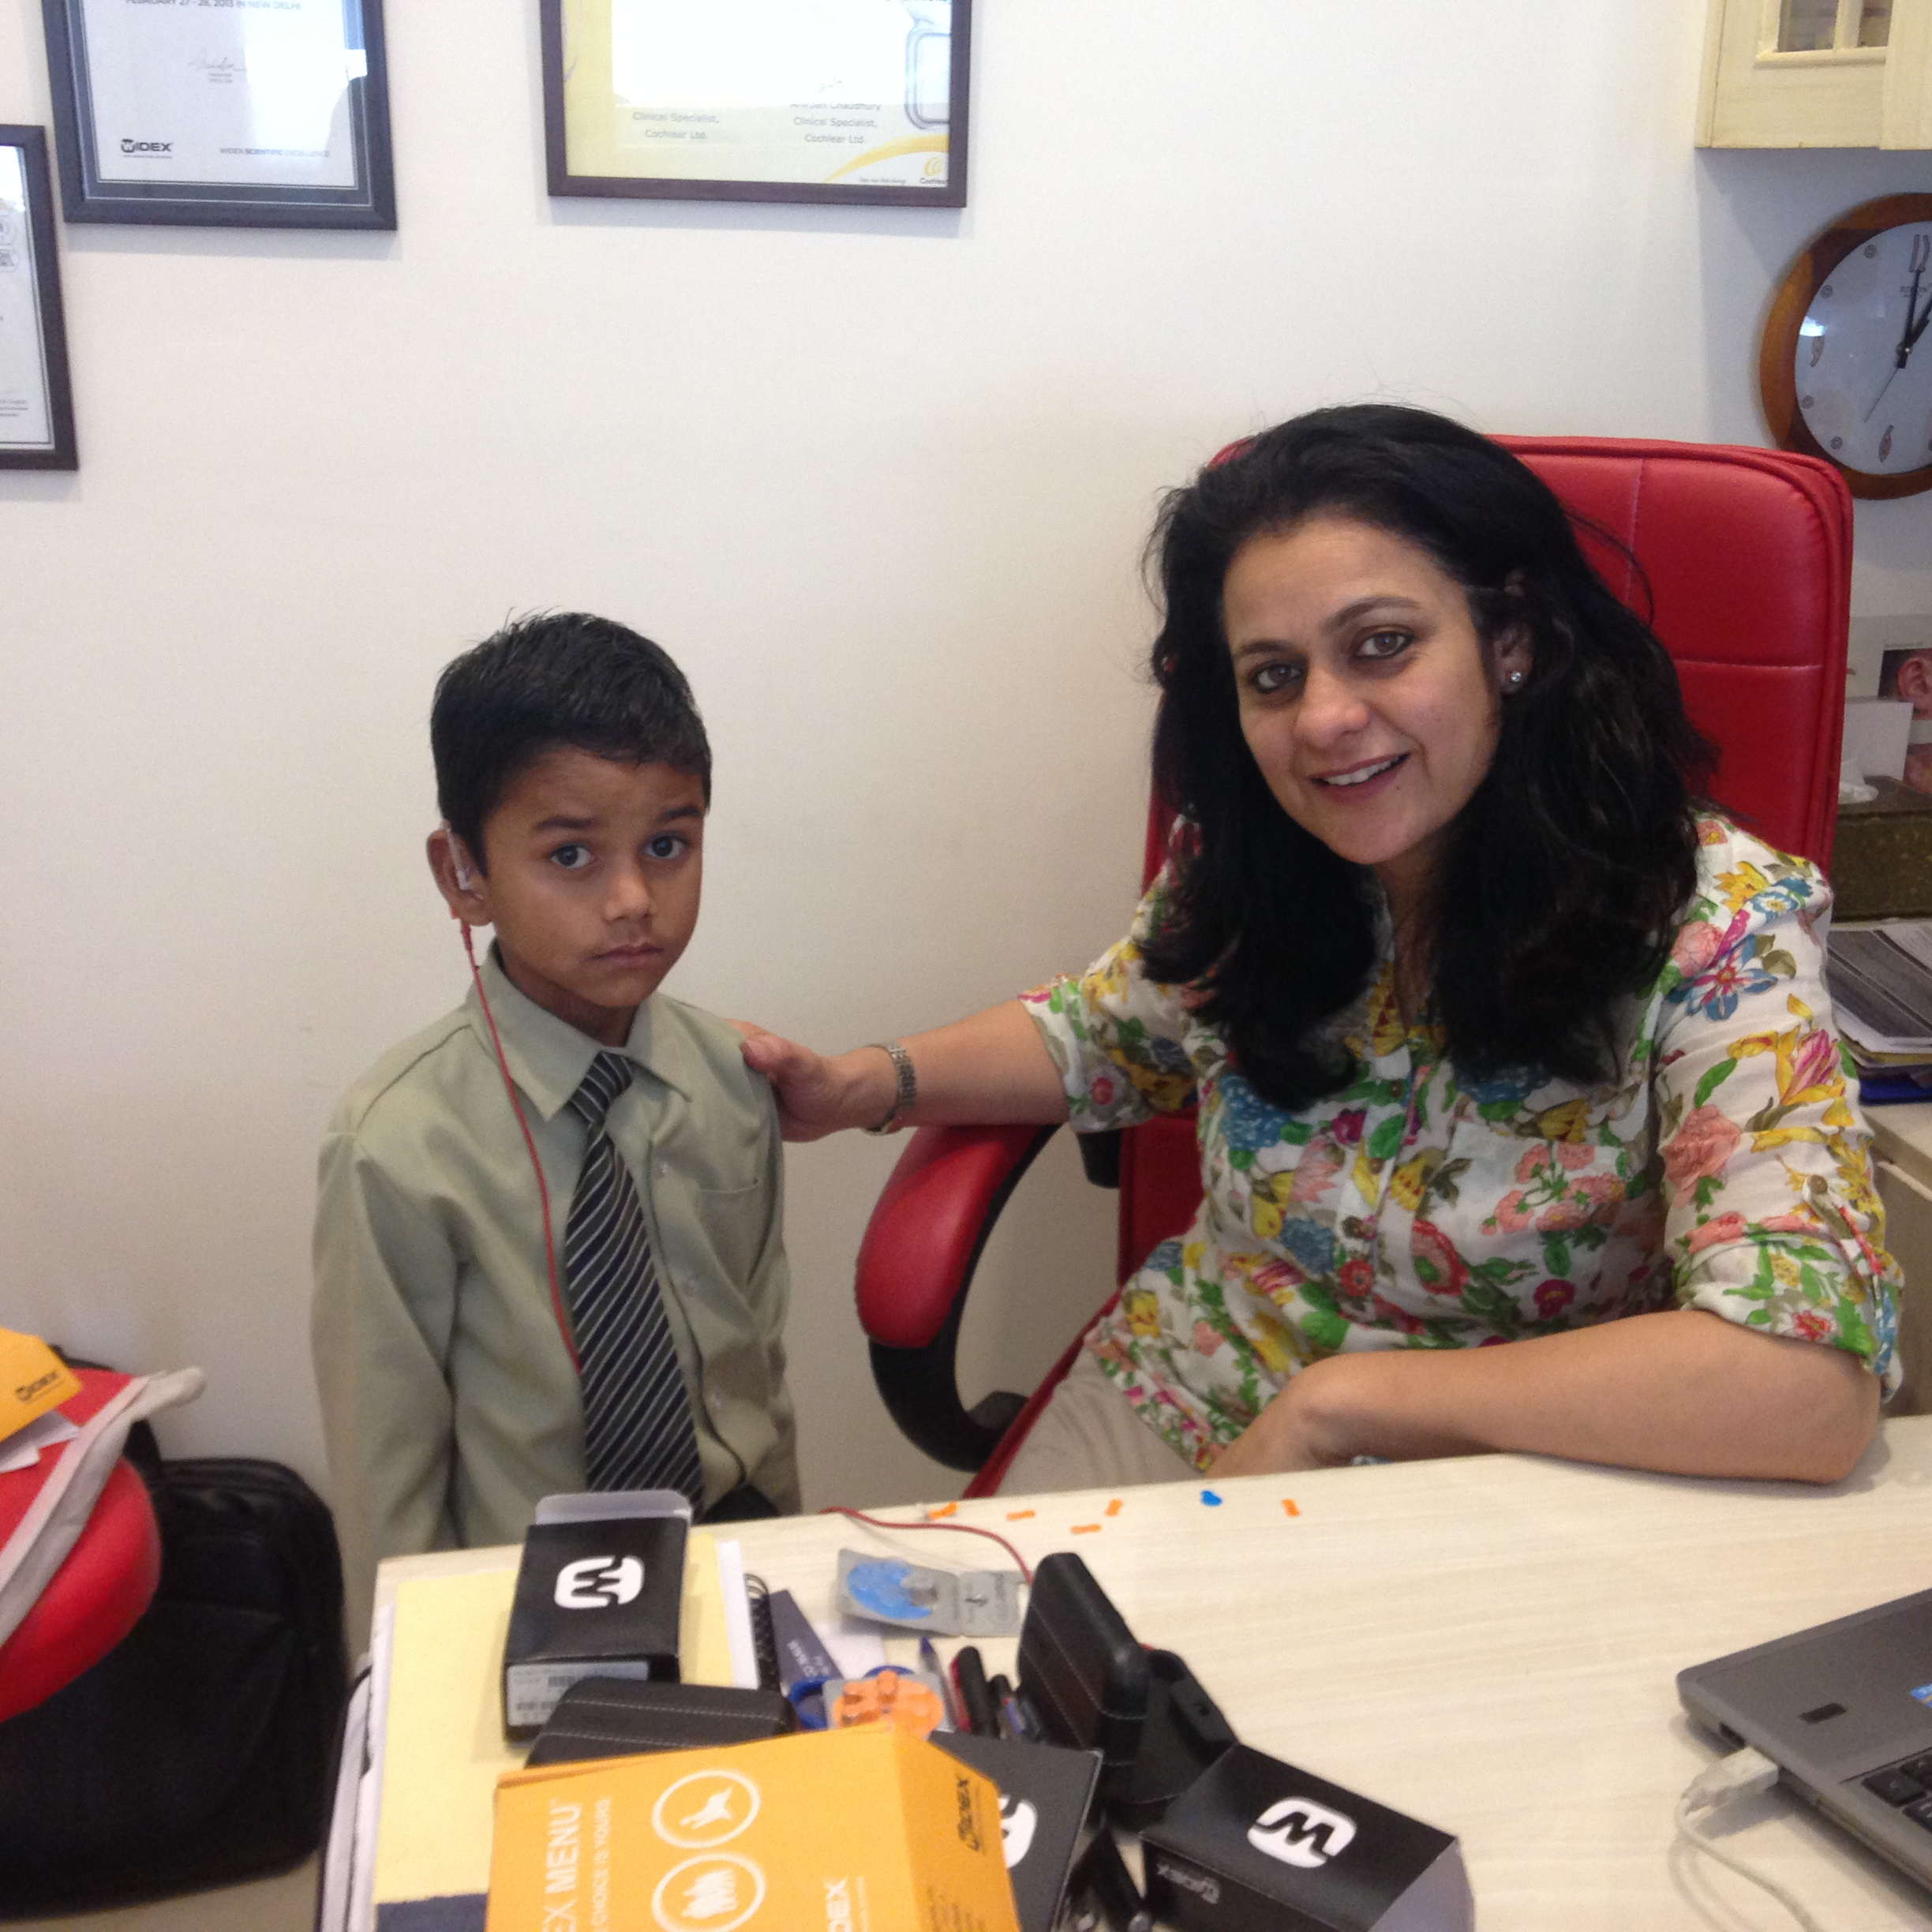 Dr Ritu Chaudhary, Audiologist & Speech Pathologist